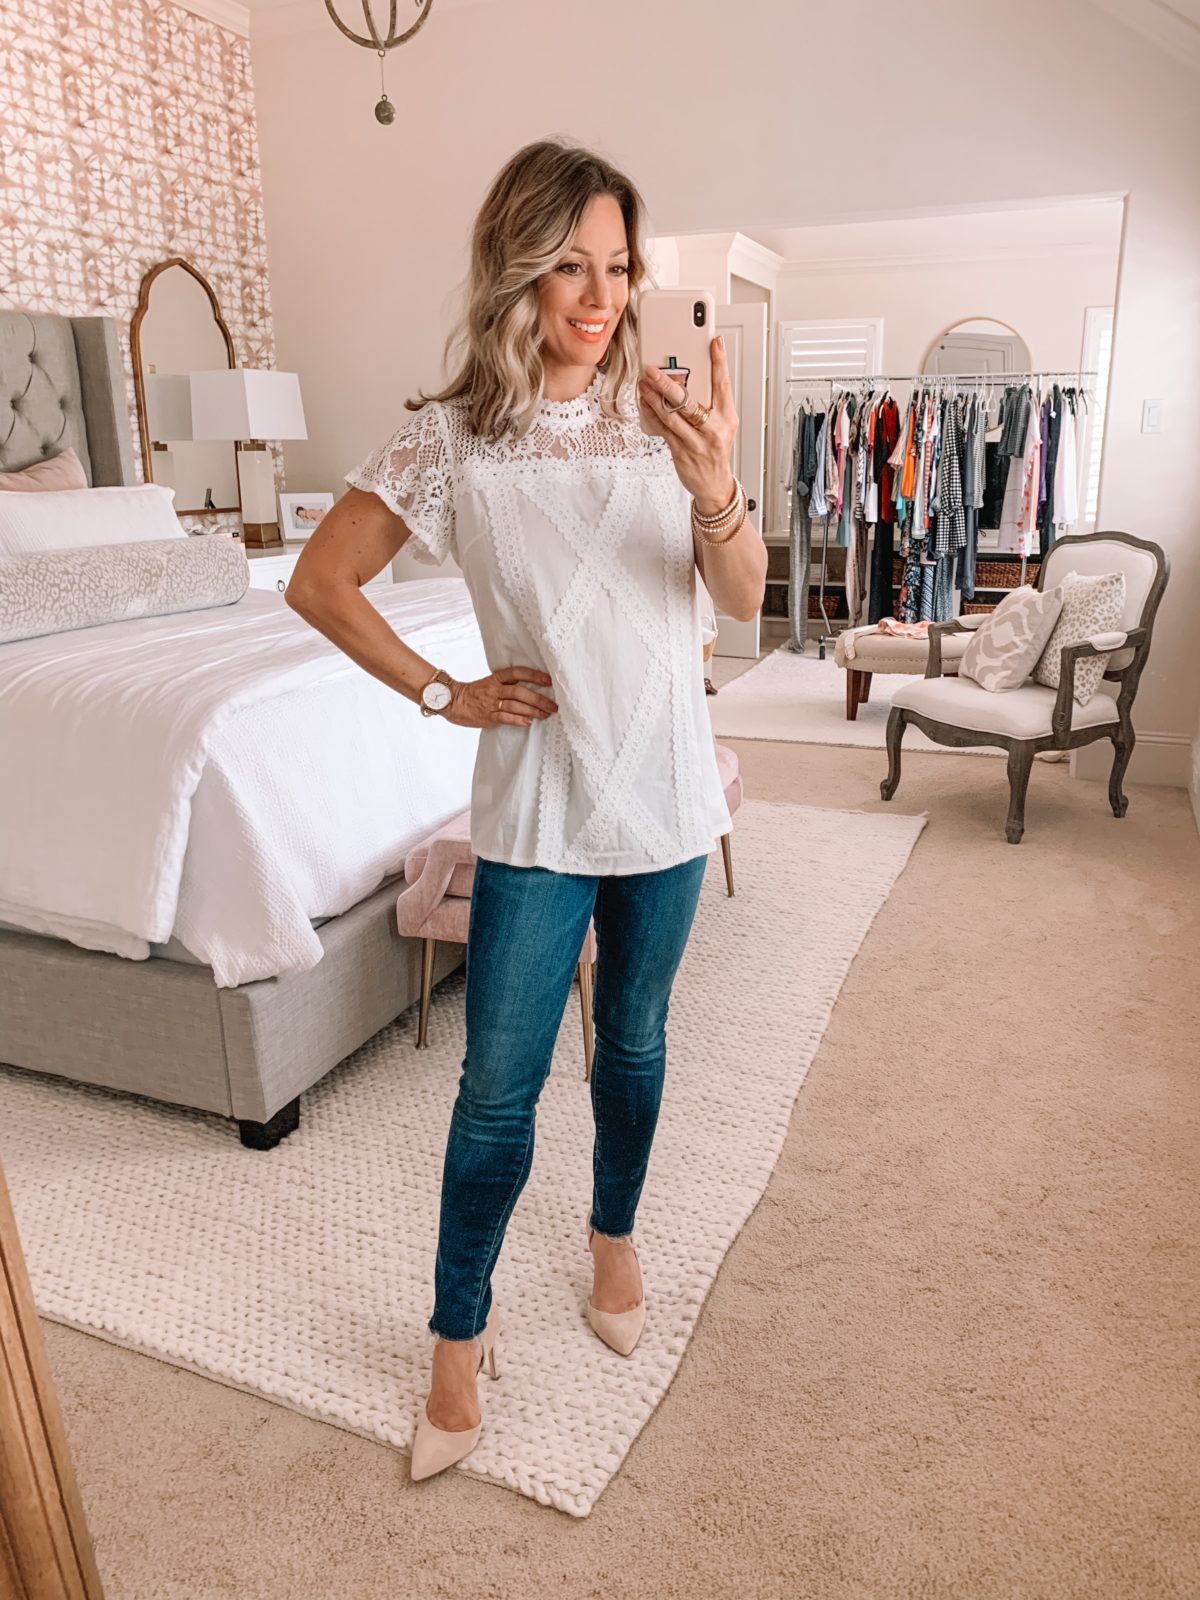 Amazon Fashion Finds, Lace Top, Skinny Jeans, Heels